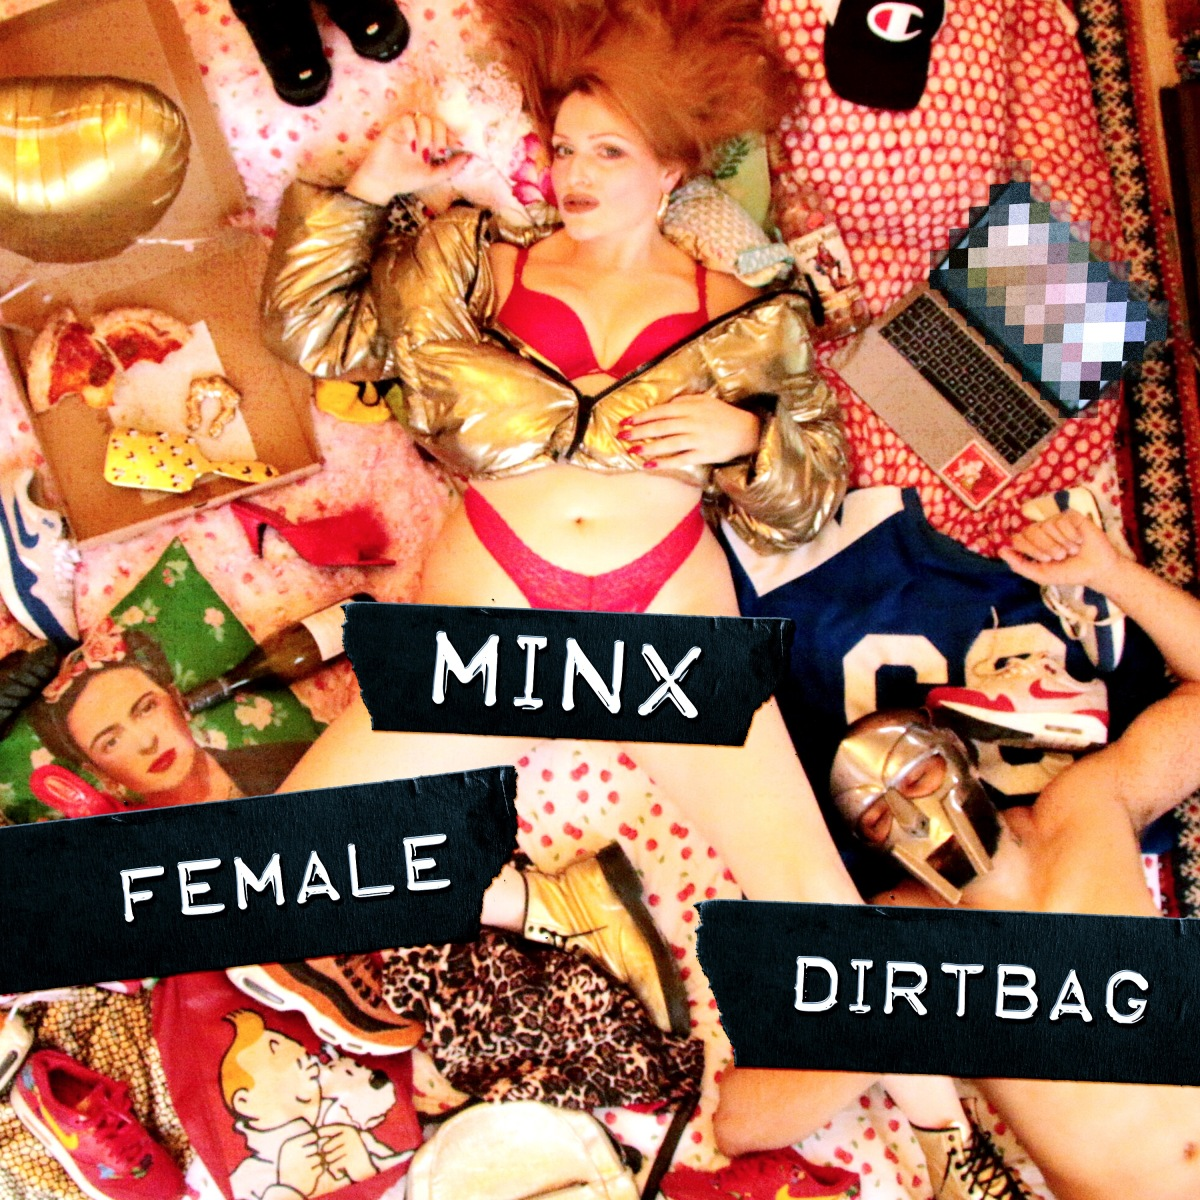 MINX 'Female Dirtbag'